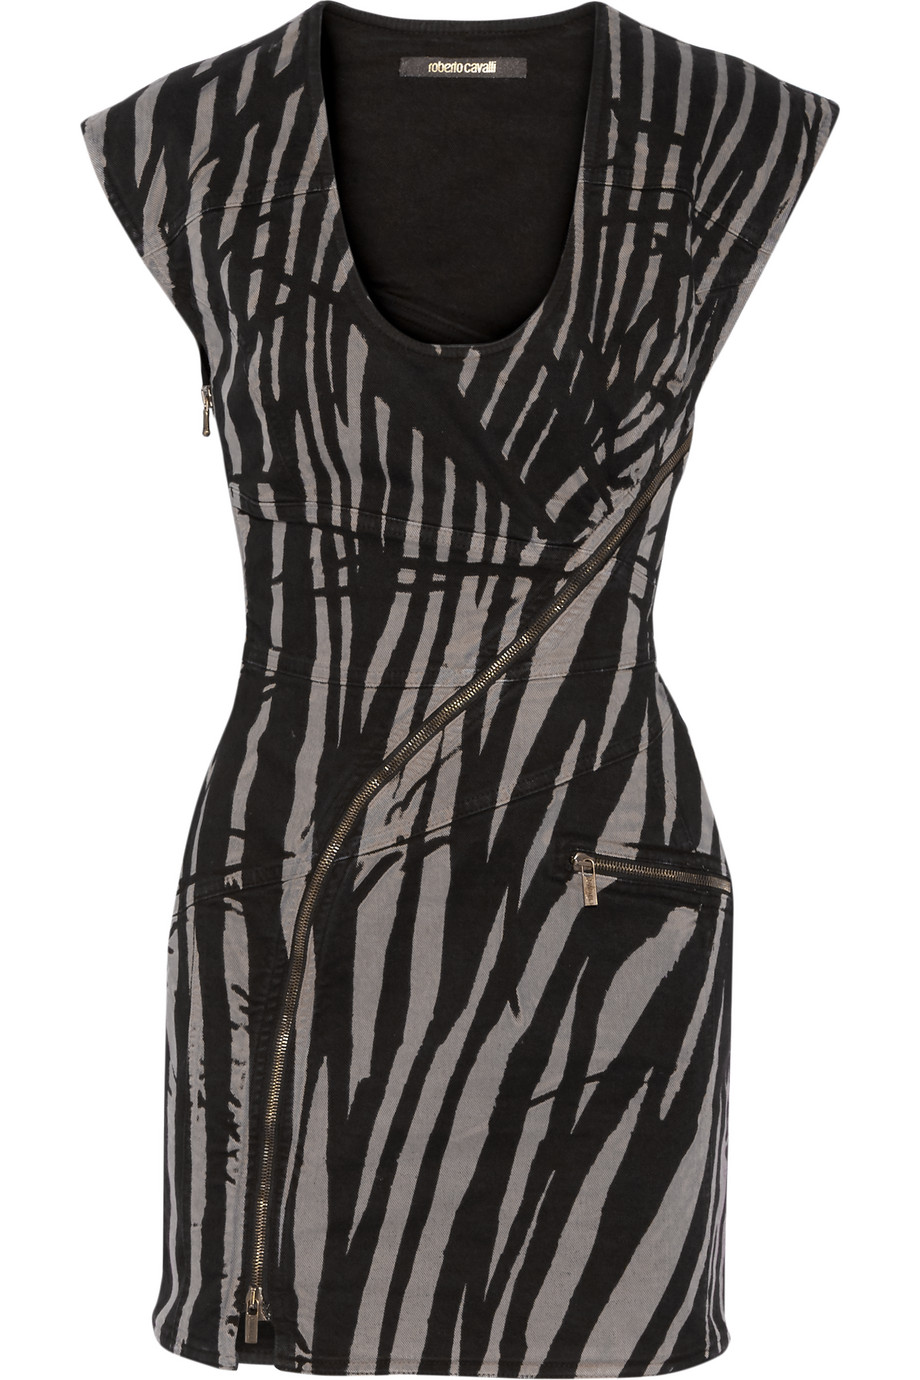 Roberto Cavalli Tiger-Print Denim Mini Dress, Black/Zebra Print, Women's - Printed, Size: 38